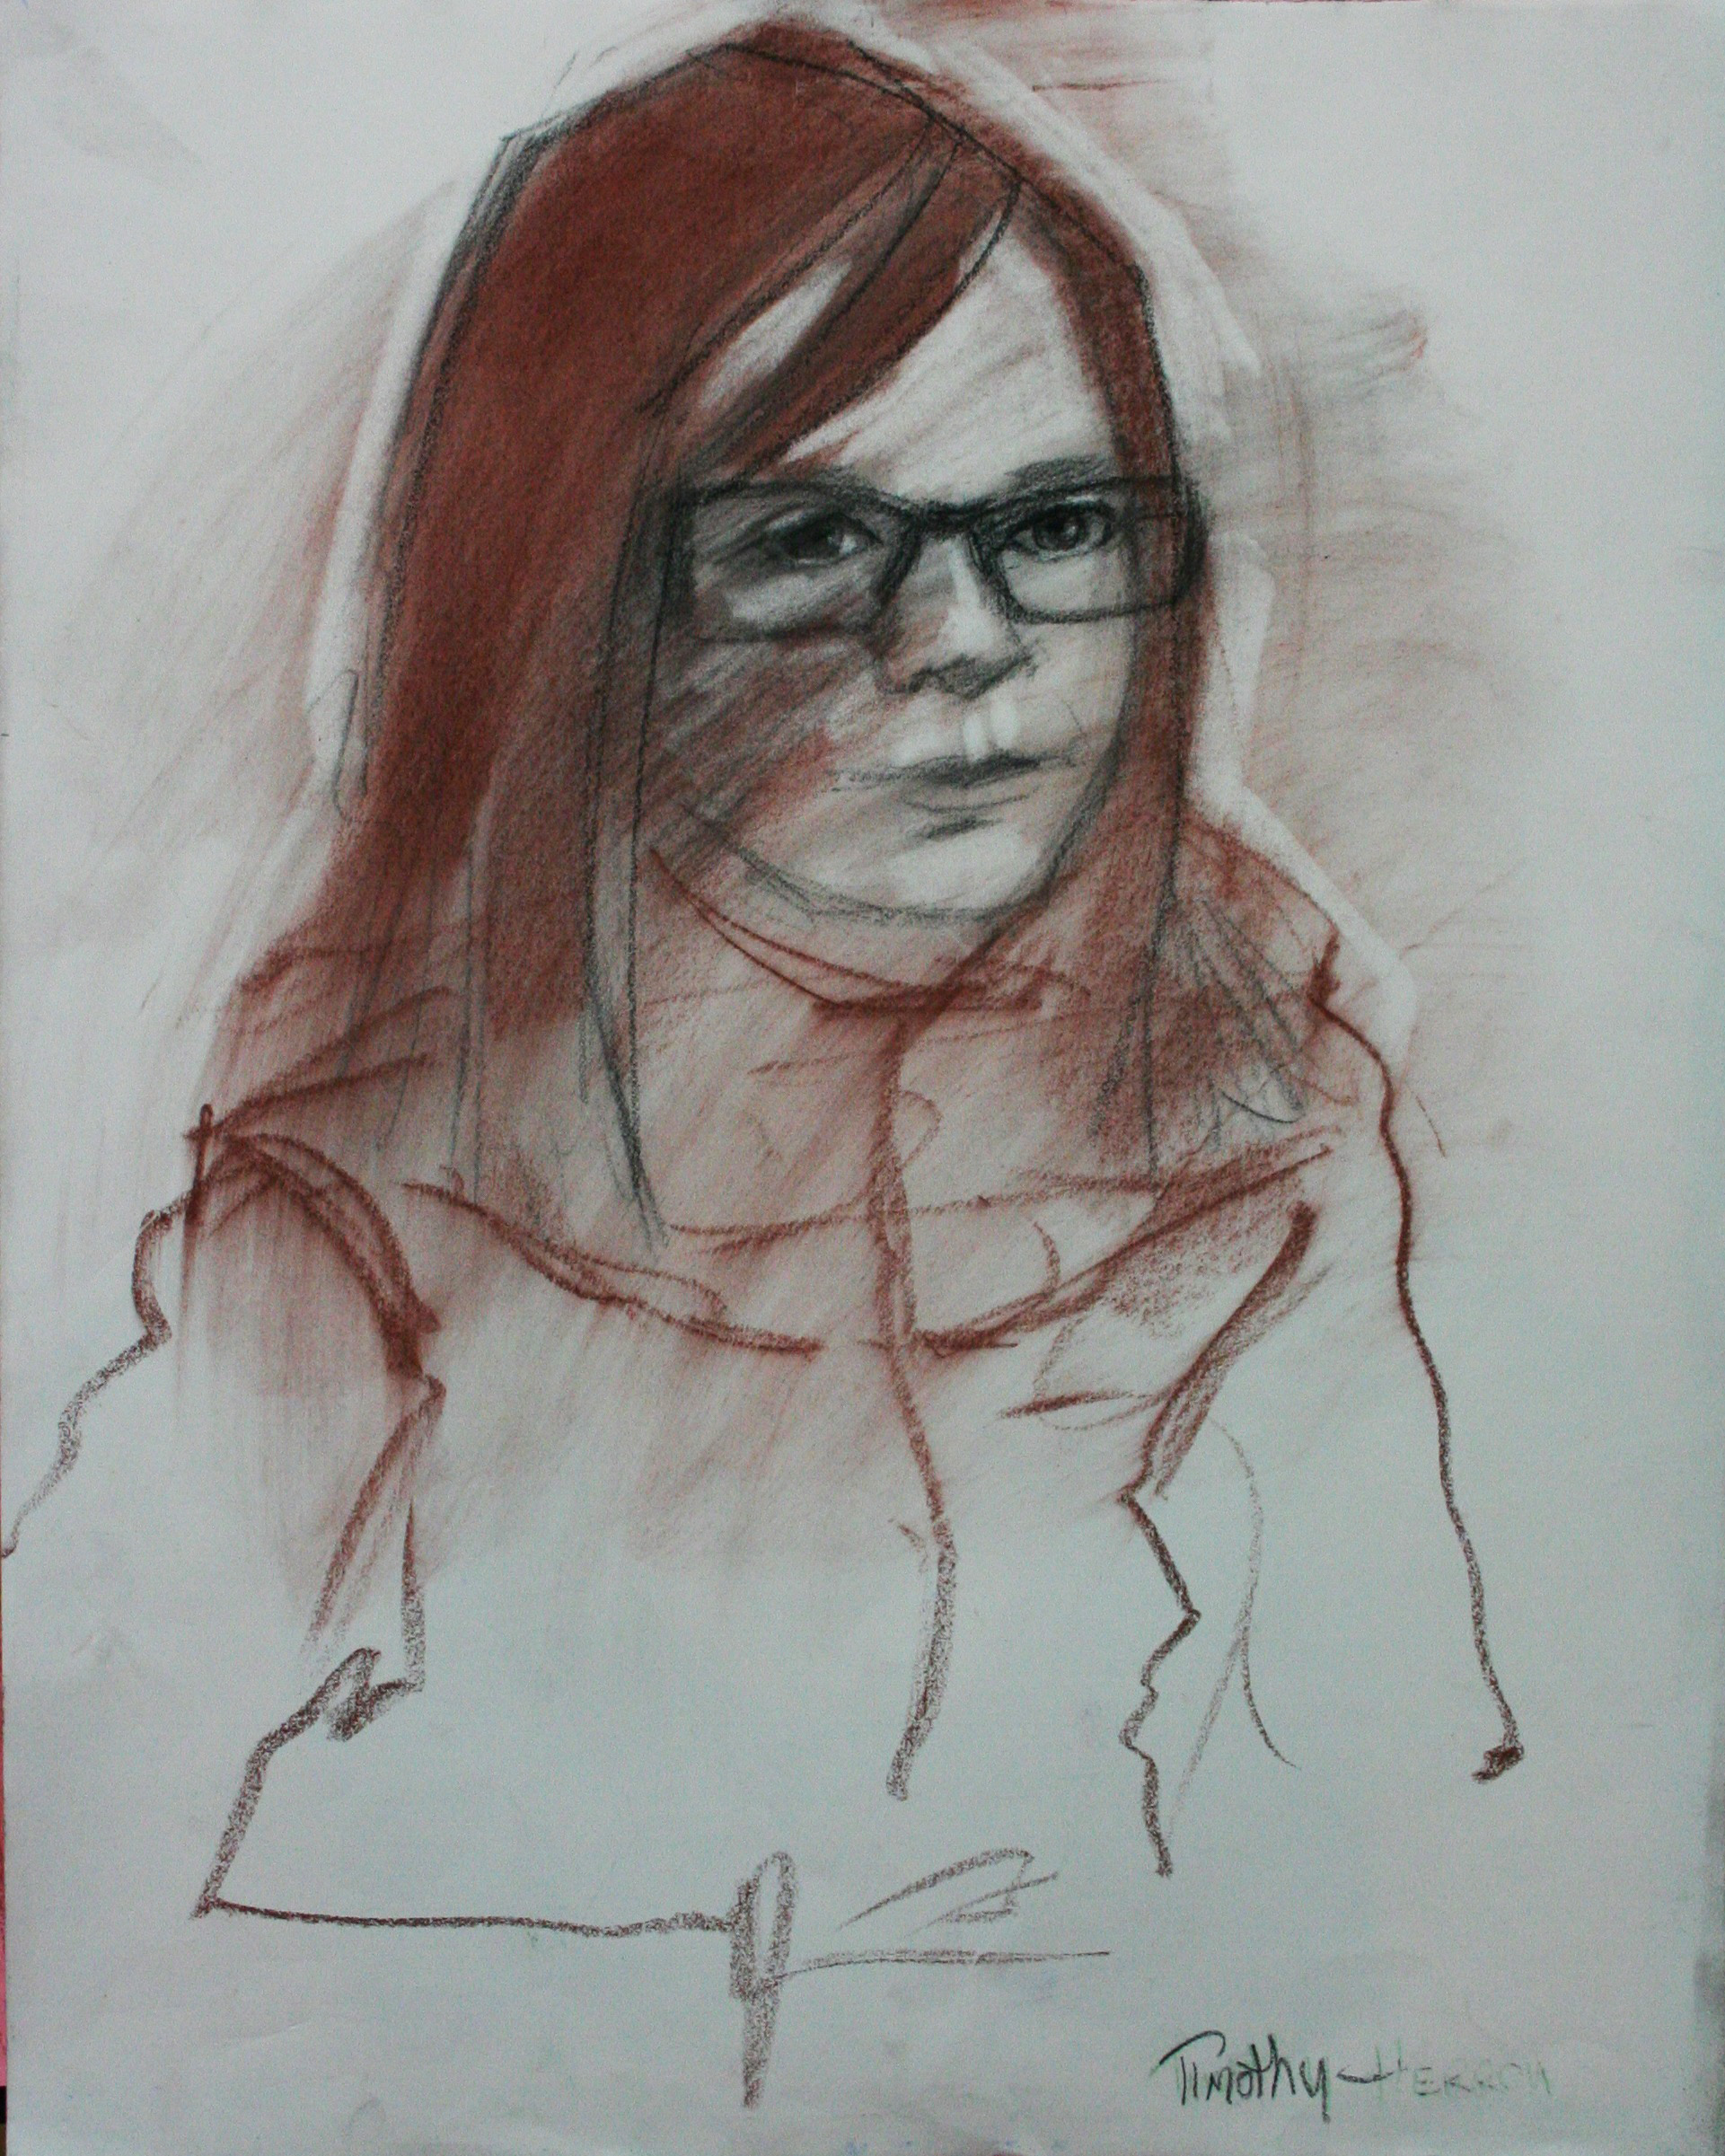 Timothy Herron did this 15 minute sketch.